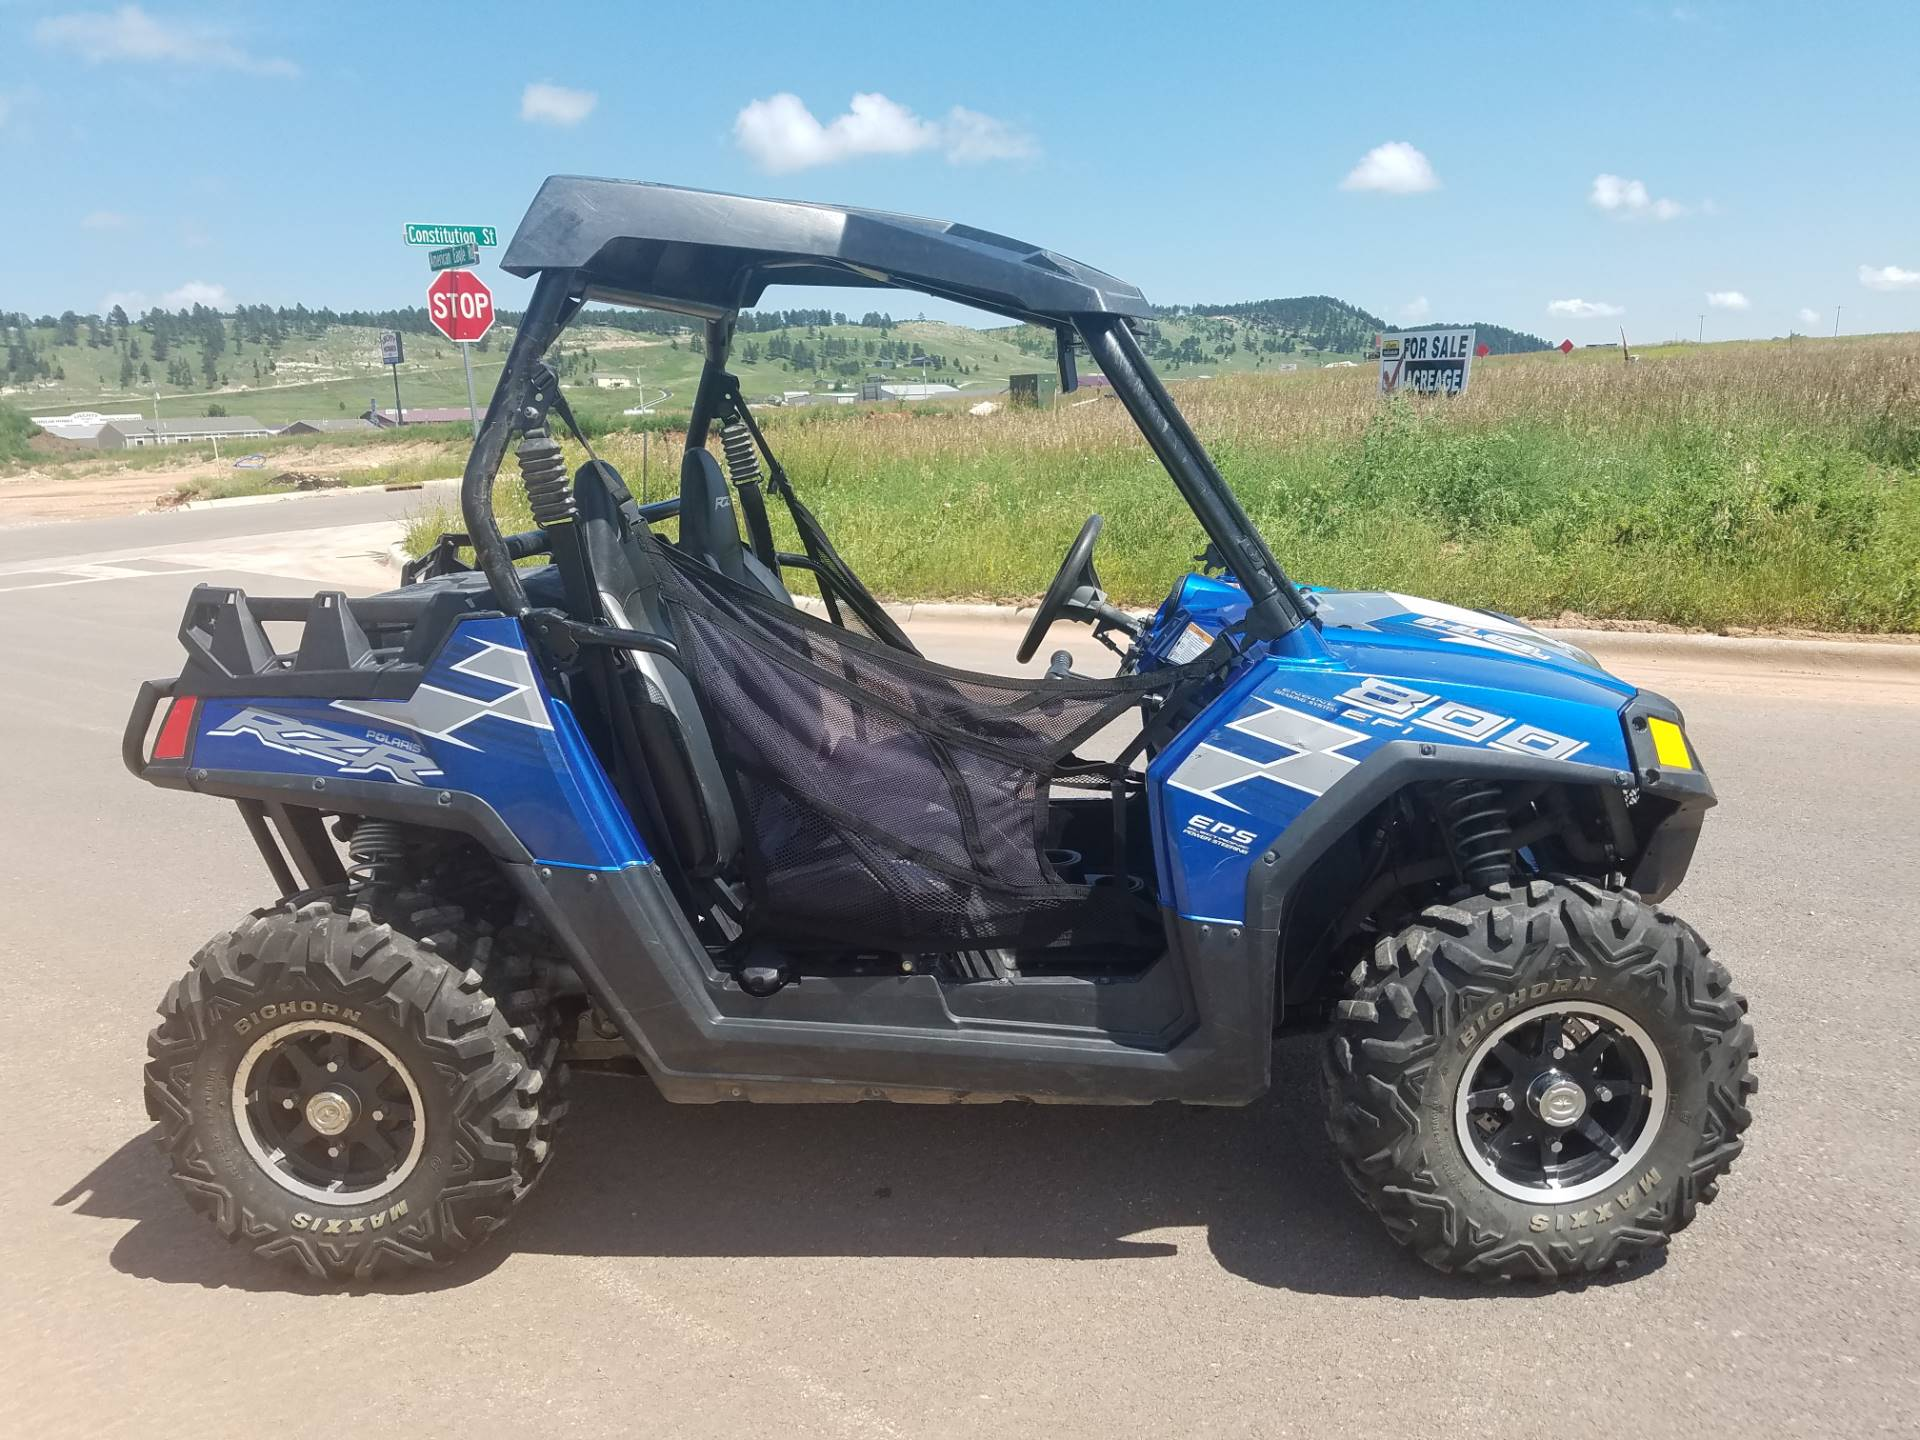 used 2013 polaris rzr 800 eps le utility vehicles in. Black Bedroom Furniture Sets. Home Design Ideas